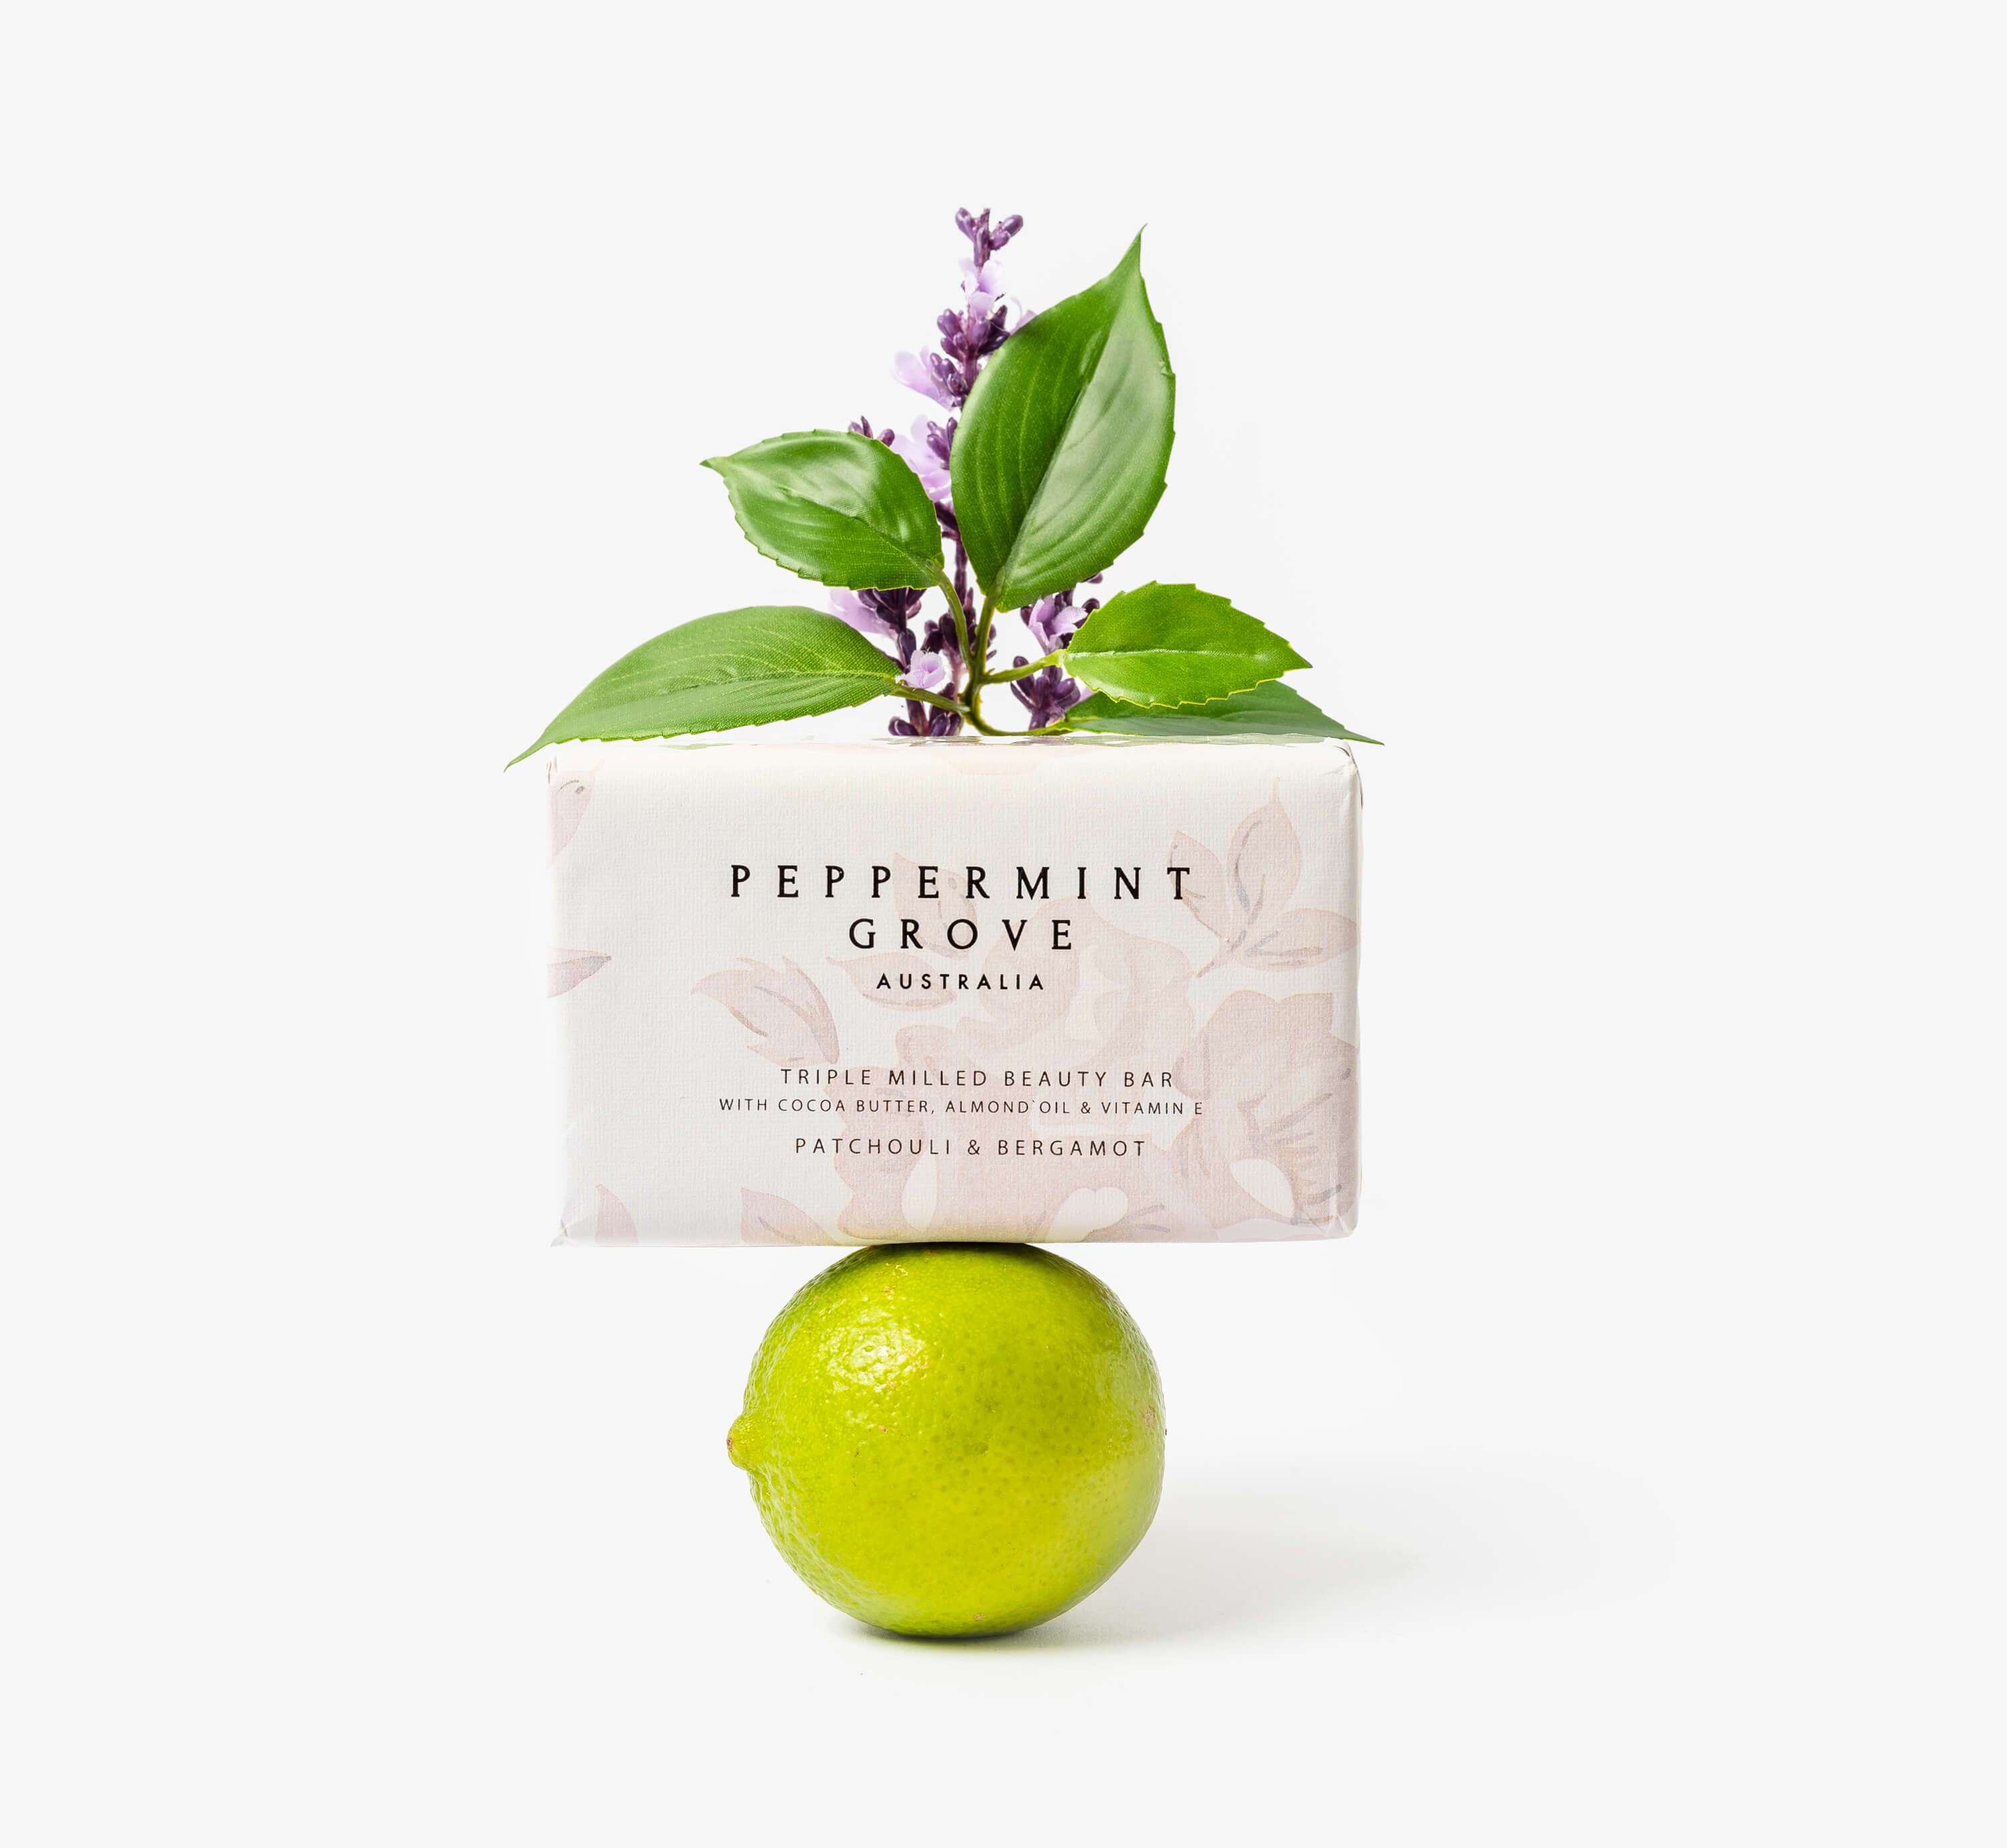 Peppermint Grove beauty bar with freesia and berries